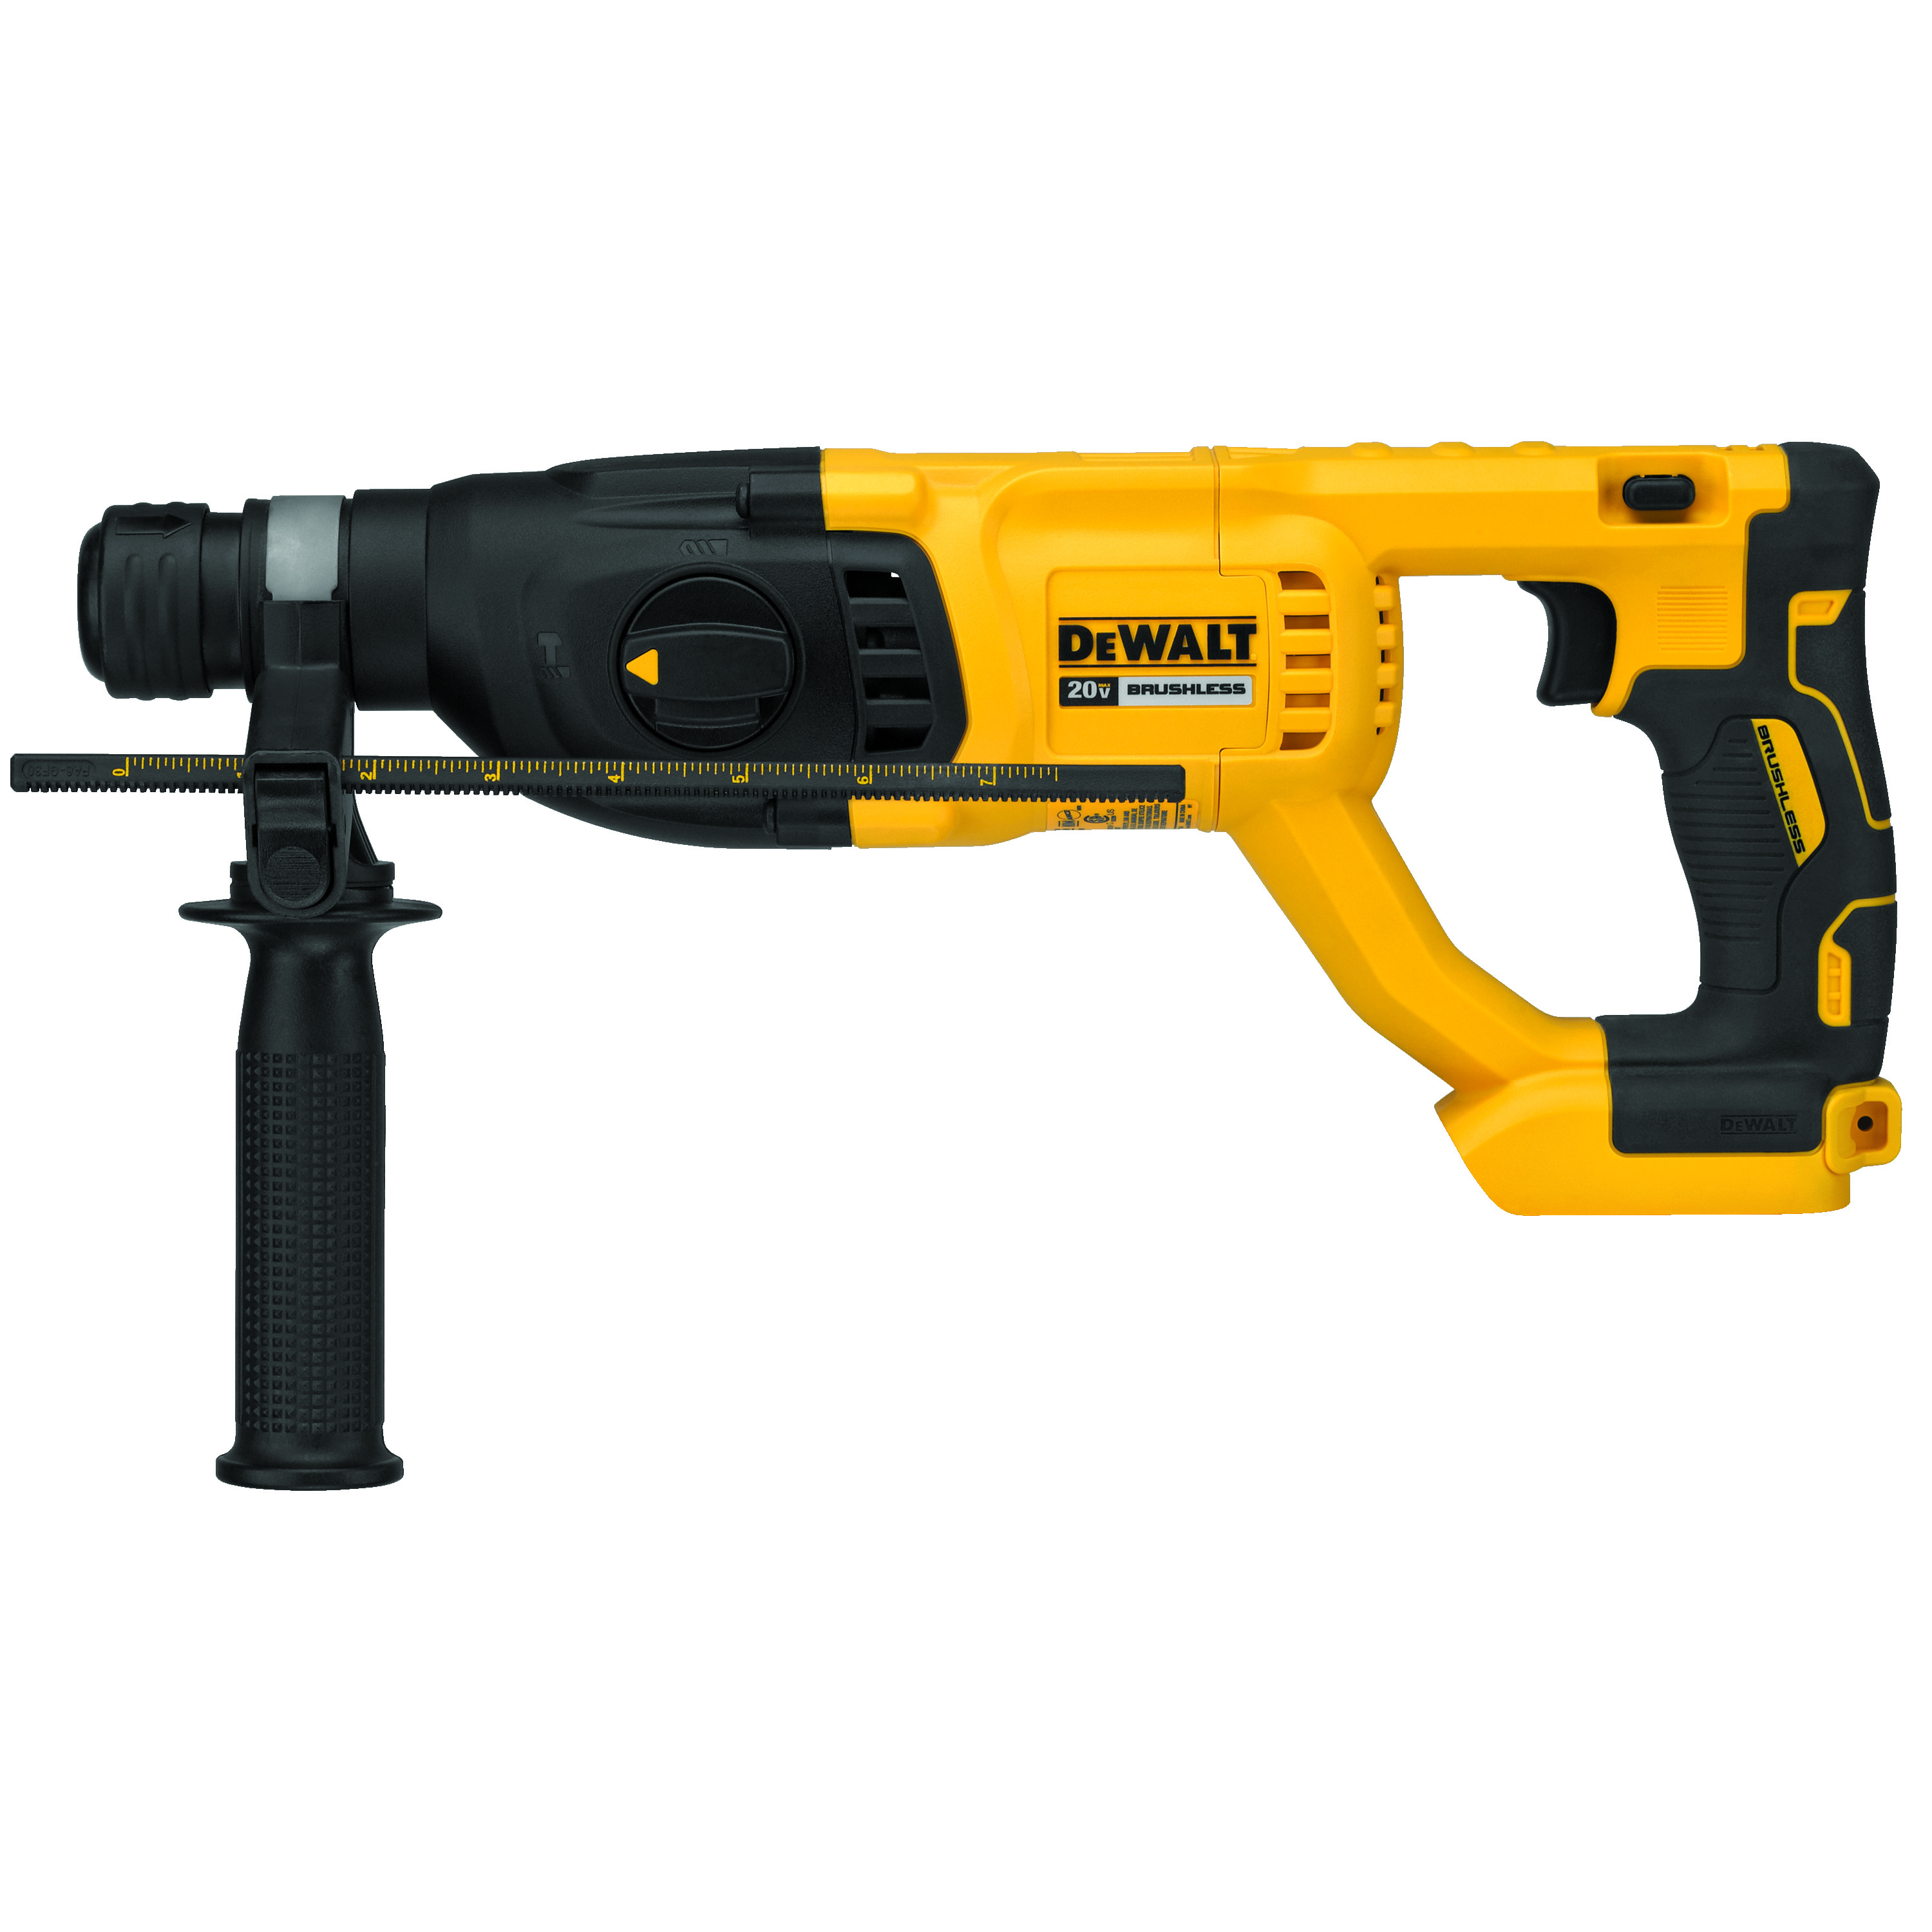 DeWALT® DCH133B Brushless Cordless Rotary Hammer, 1 in SDS Plus® Chuck, 20 VDC, 0 to 1500 rpm No-Load, Lithium-Ion Battery